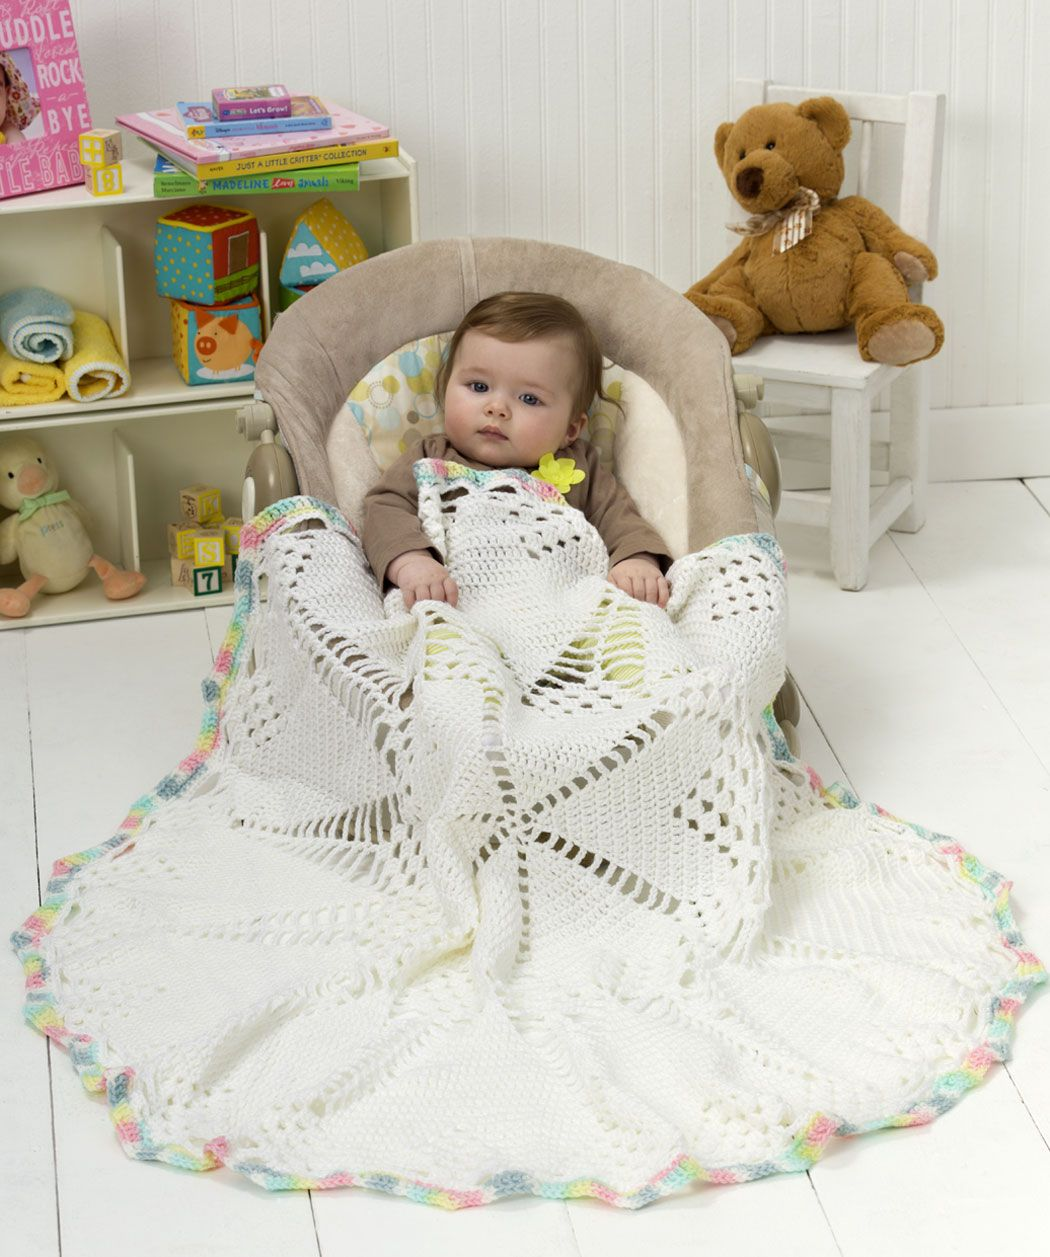 Doily Baby Blanket Crochet Pattern If you enjoy crocheting in the round, you'll love creating ...